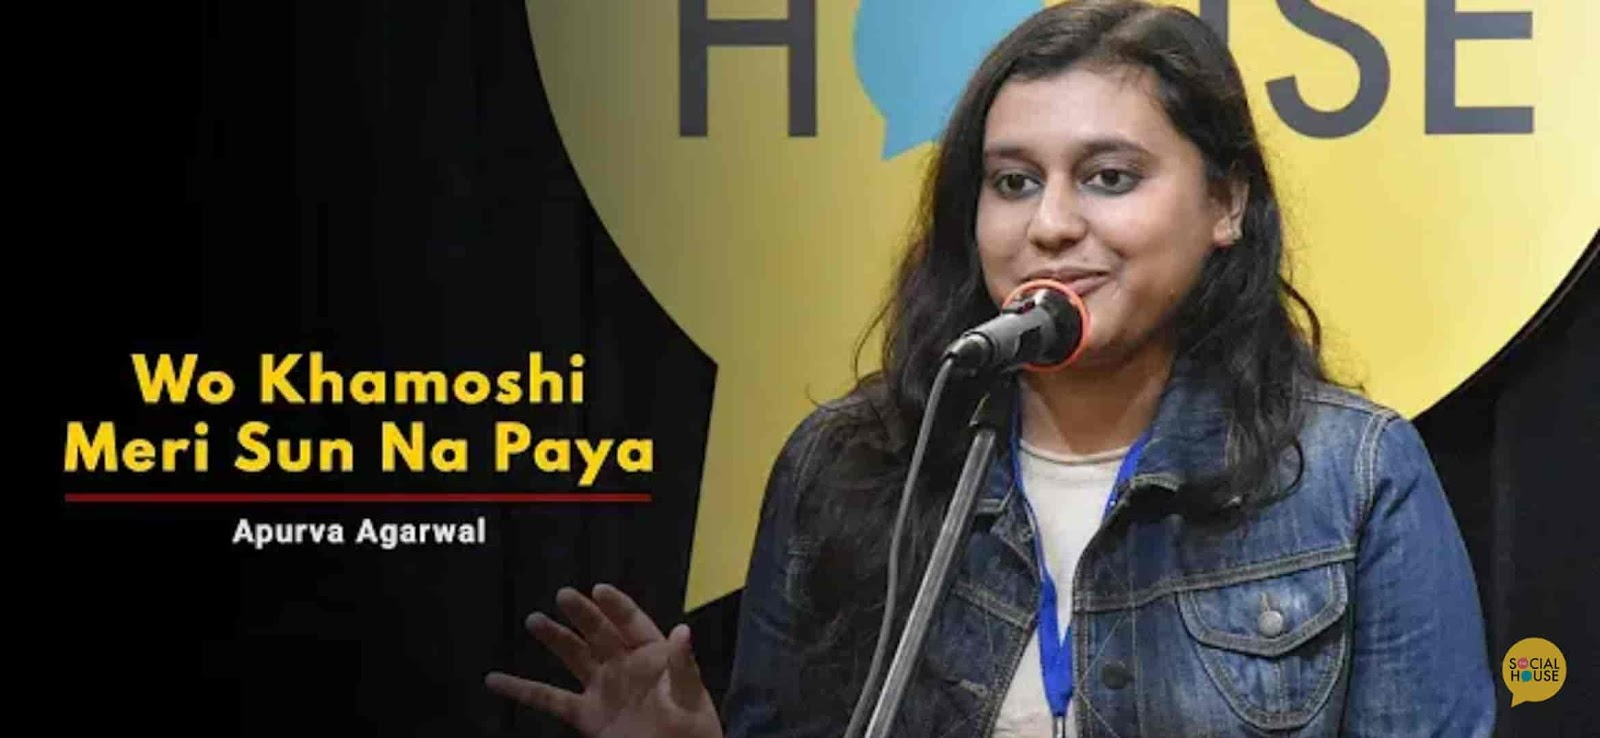 About This Poetry :- This beautiful love poetry  'Wo Khamoshi Meri Sun Na Paya' for The Social House is presented by Apurva Agarwal and also written by her which is very beautiful a piece.